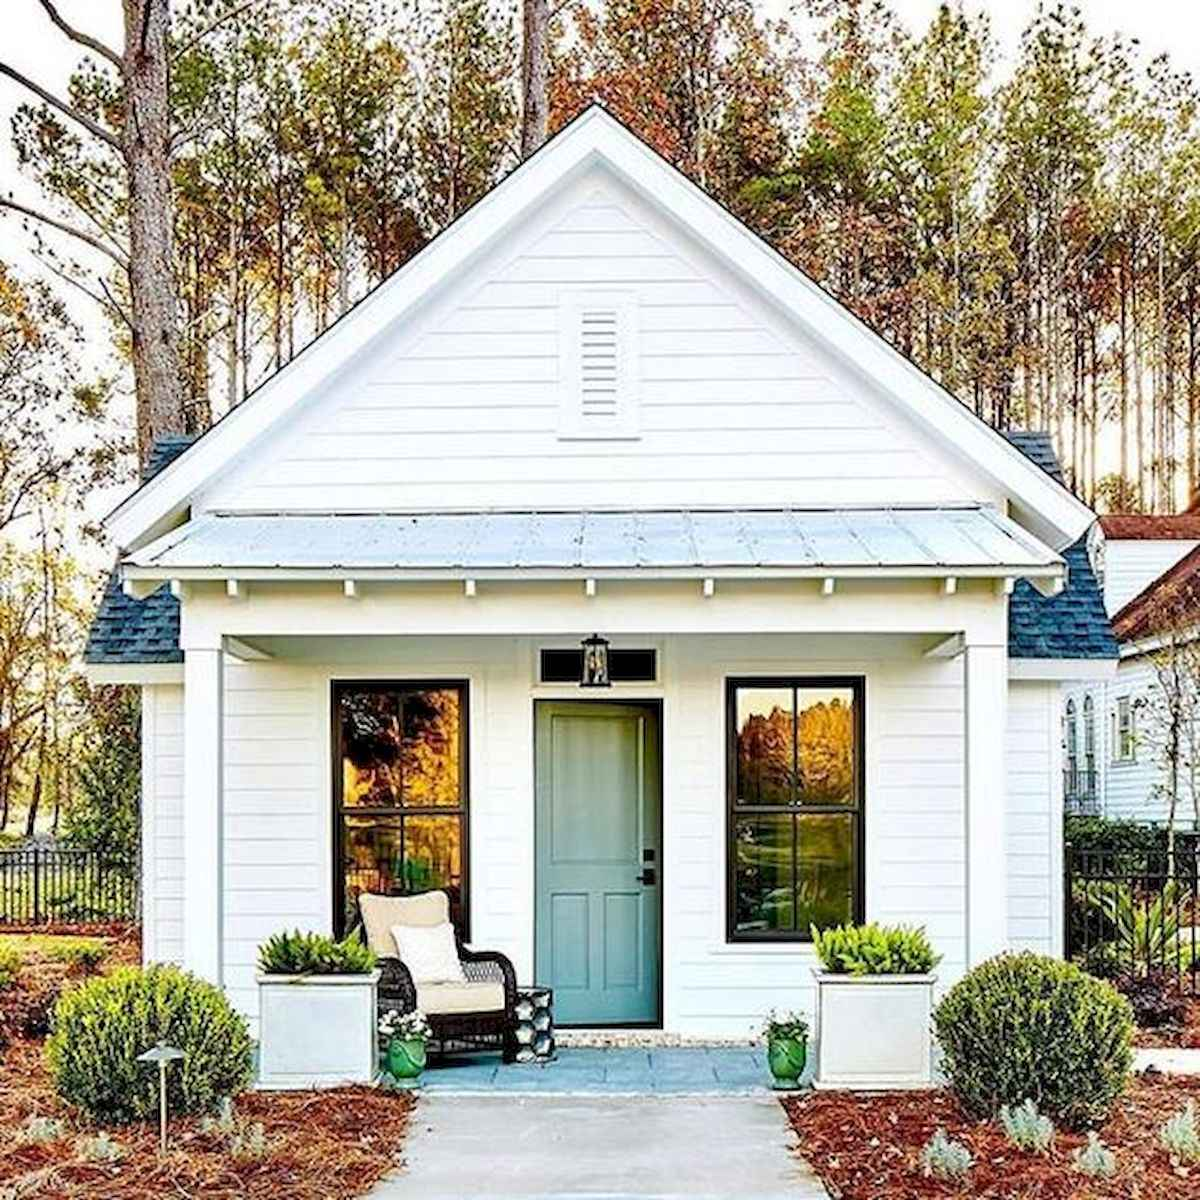 60 Beautiful Tiny House Plans Small Cottages Design Ideas (13)